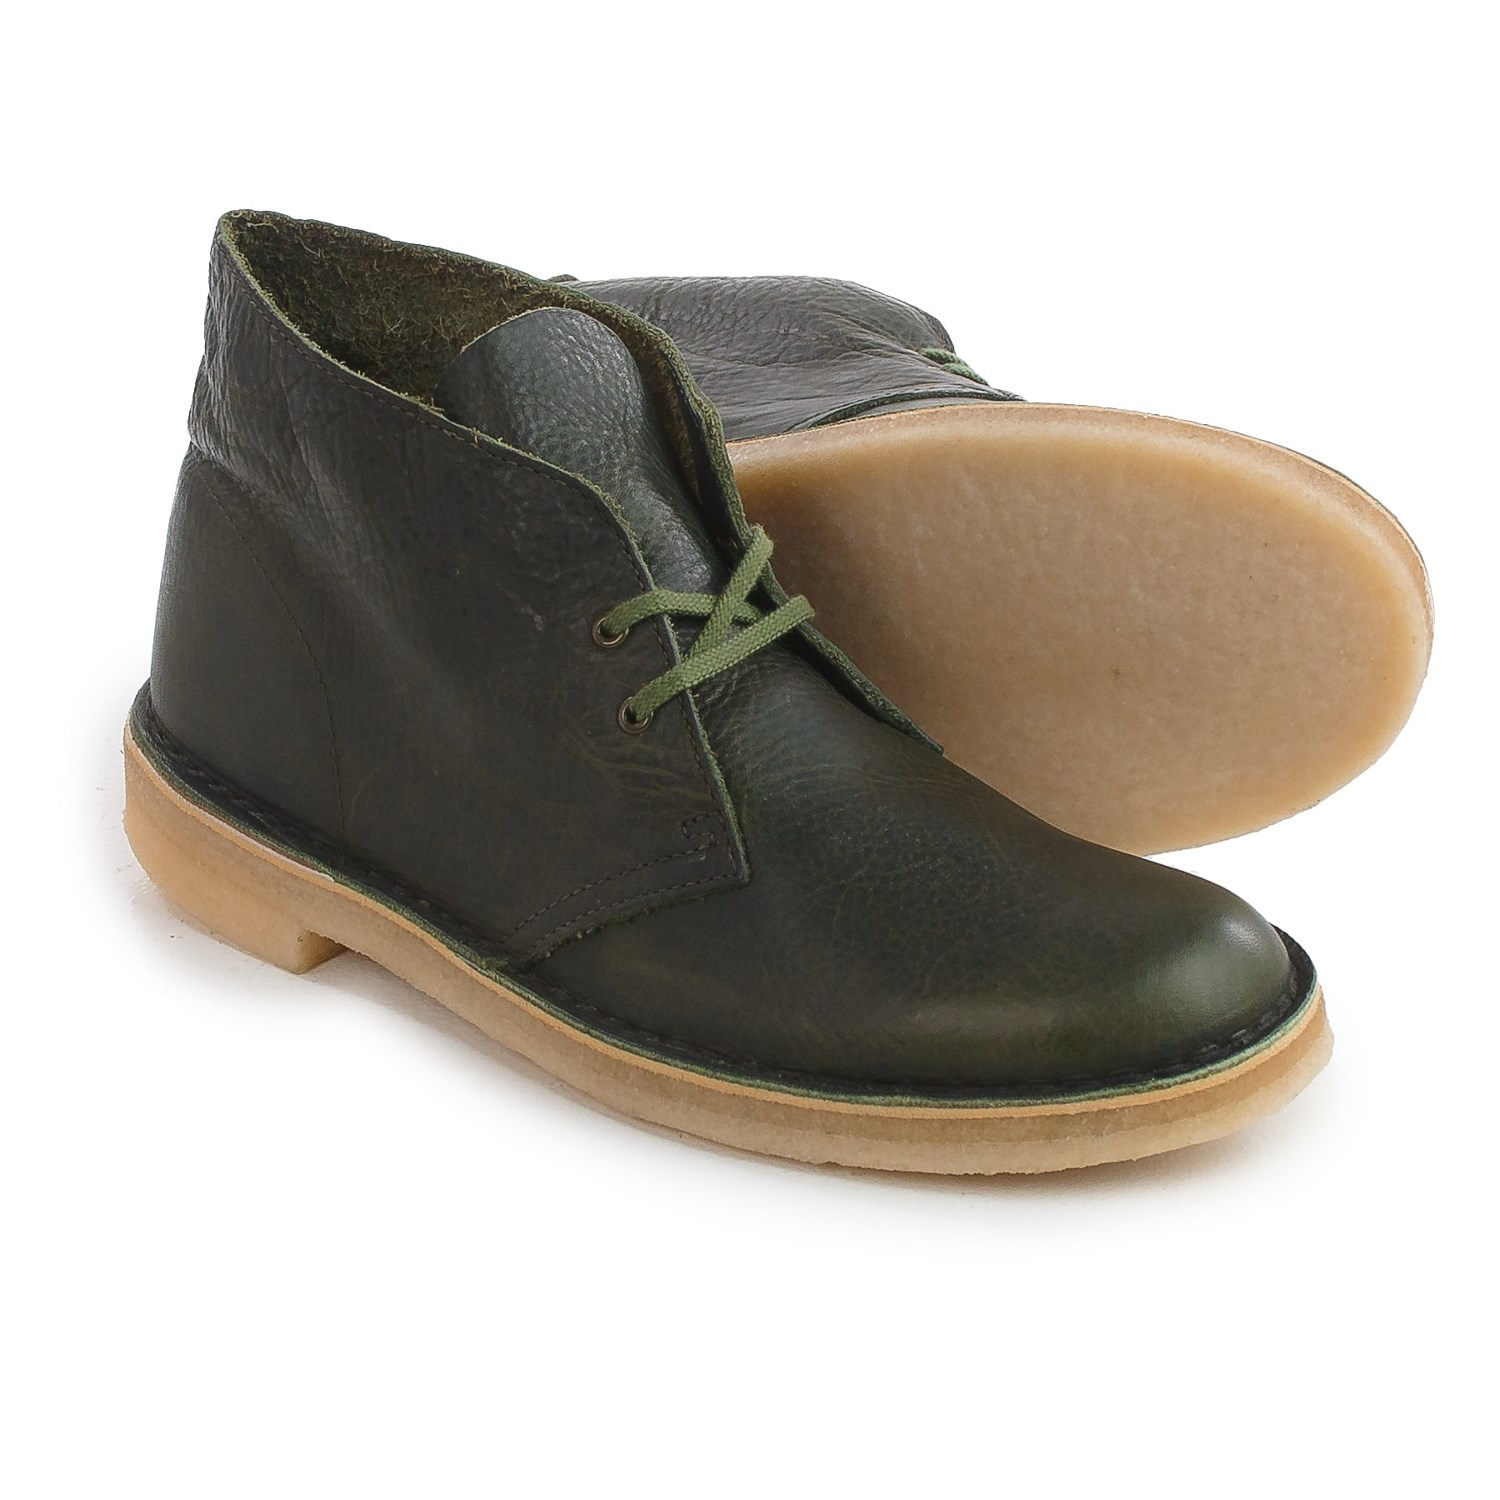 Free shipping BOTH ways on brown suede desert boots for men, from our vast selection of styles. Fast delivery, and 24/7/ real-person service with a smile. Click or call